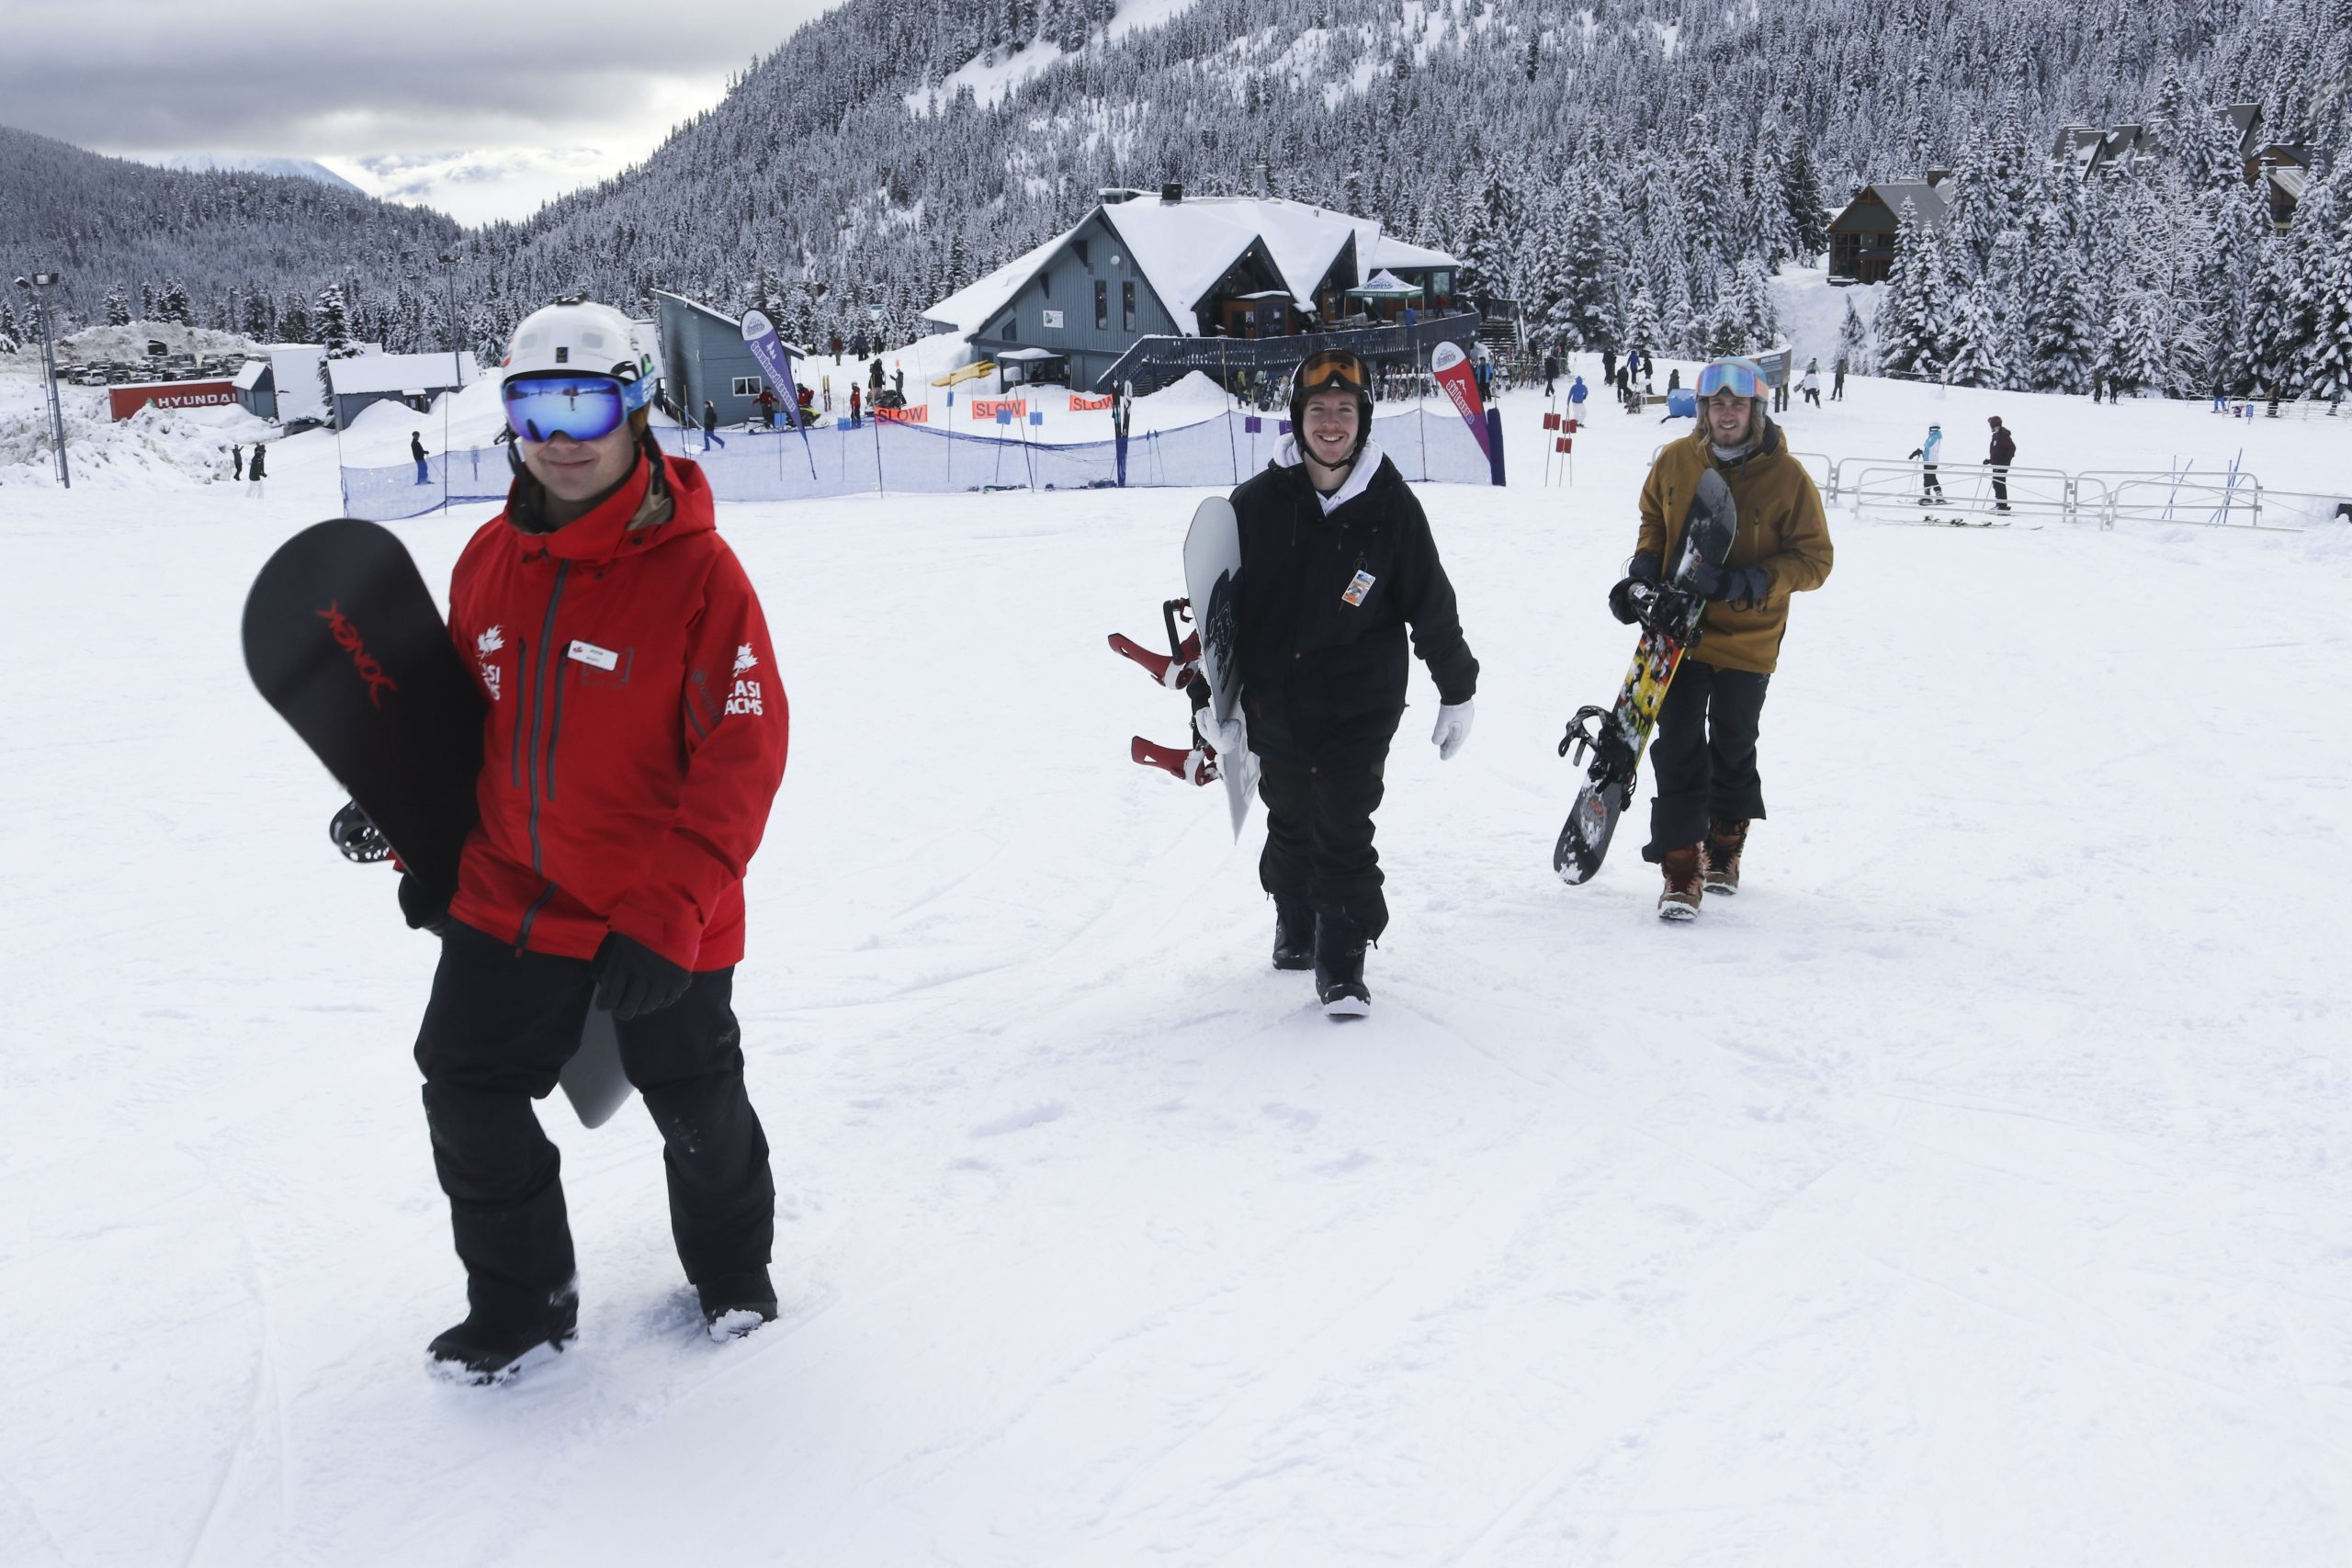 Walking with snowboards in snow at Sasquatch Mountain Resort